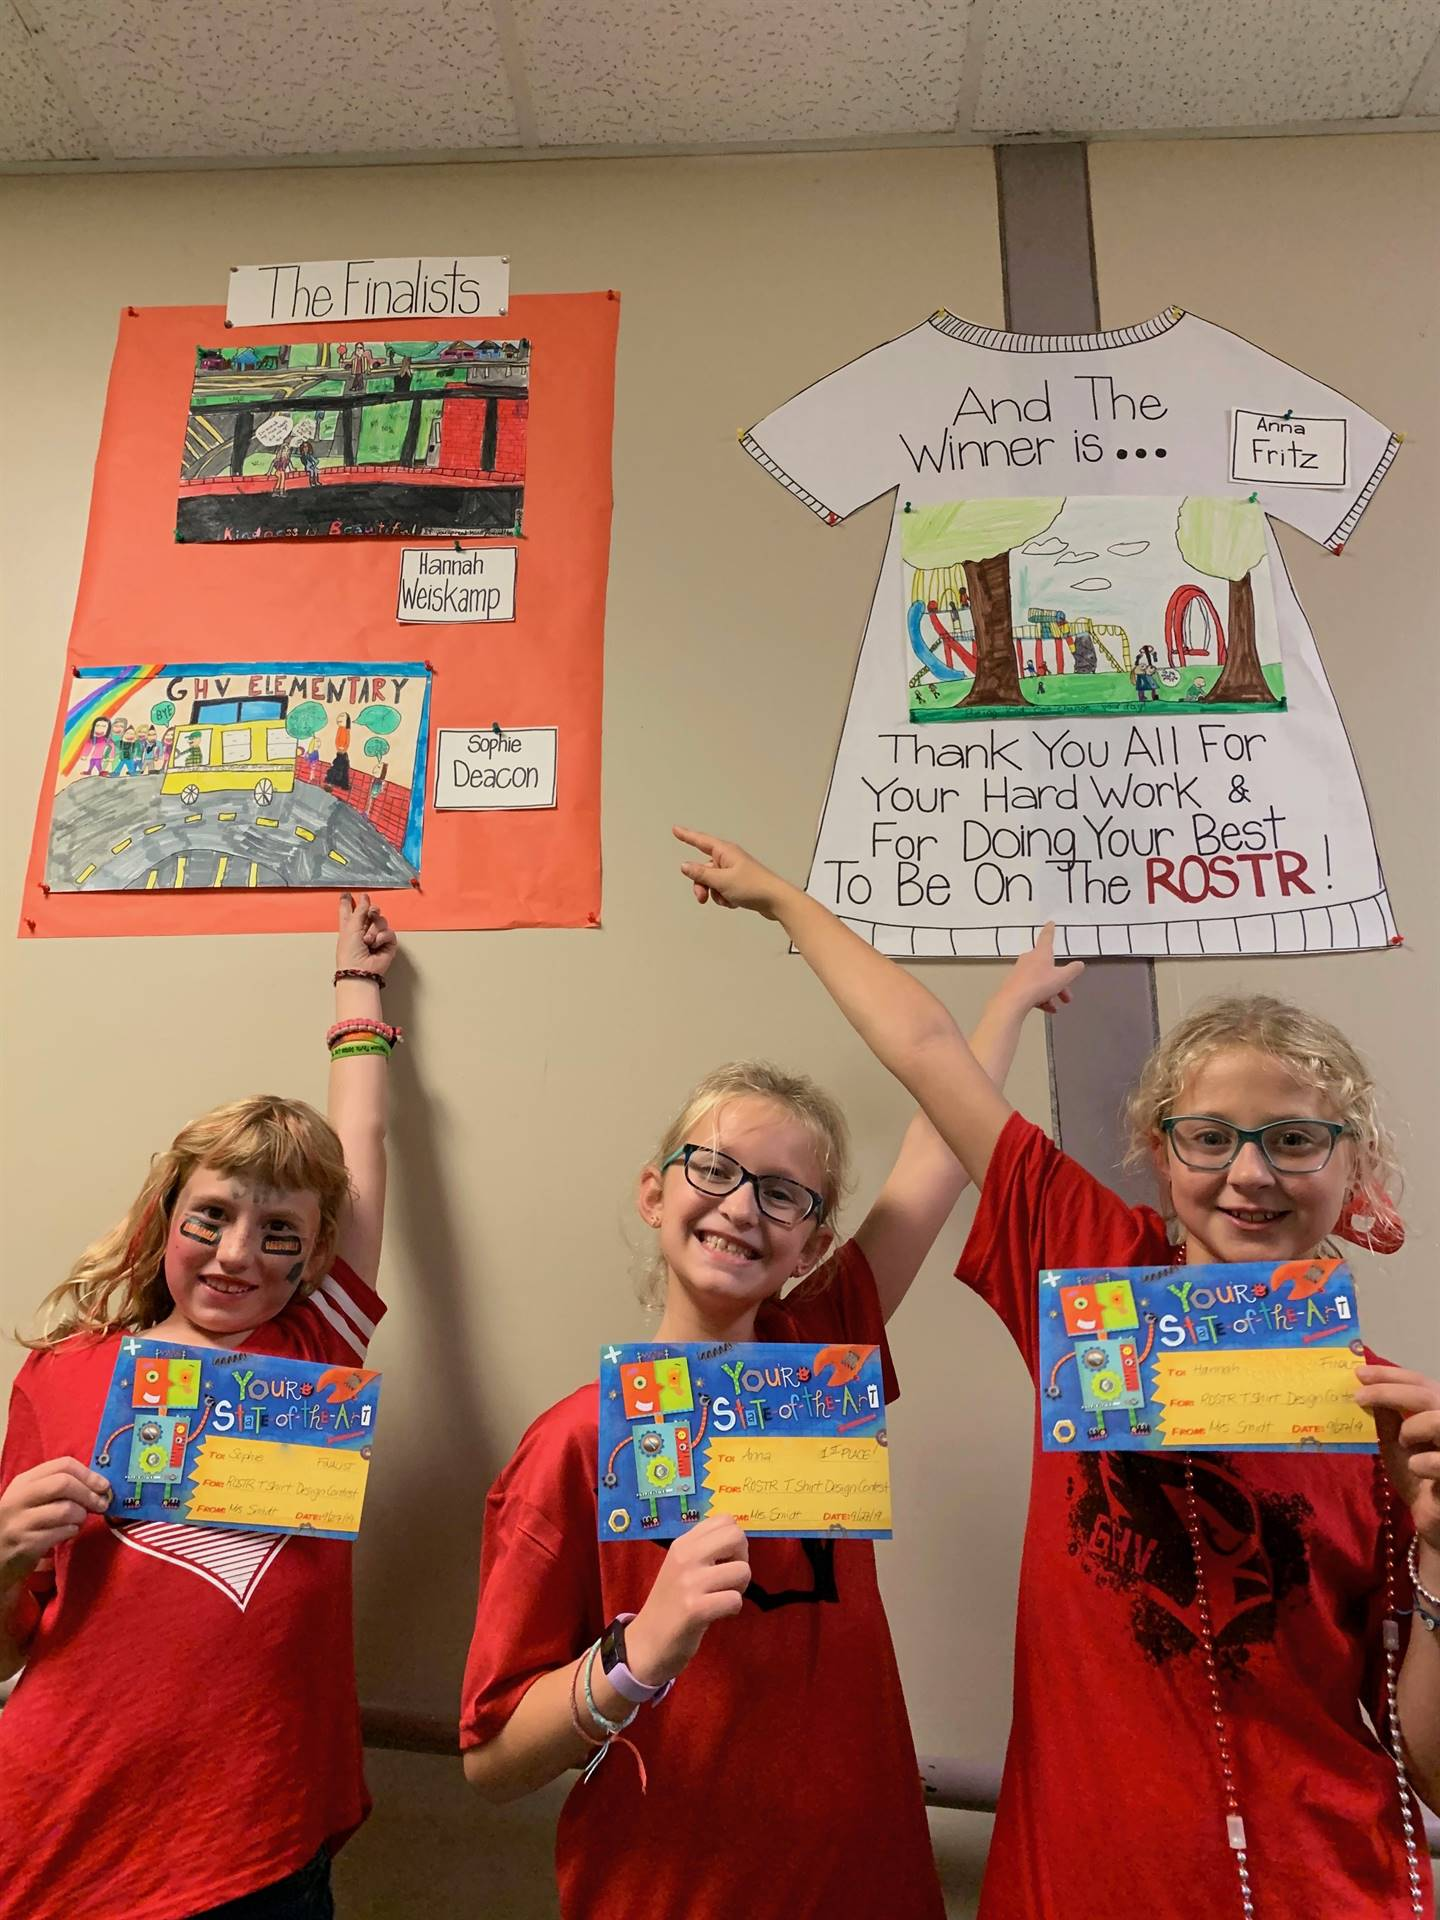 Three elementary girls holding certificates and pointing to their tshirt designs